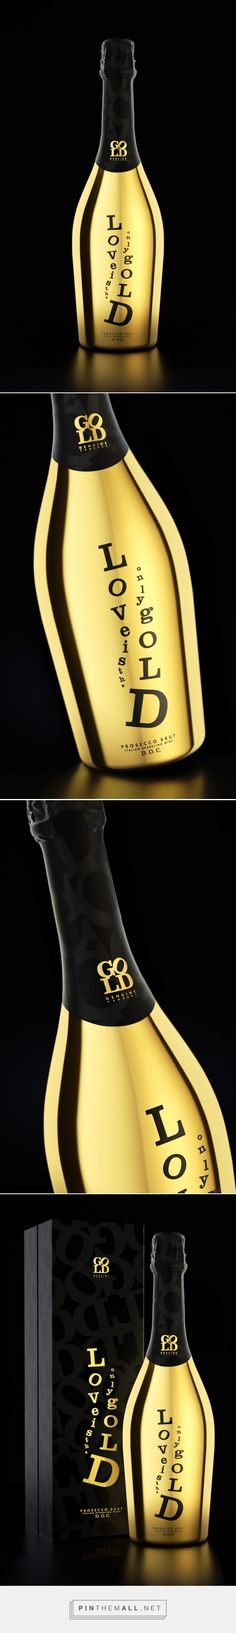 Love Is The Only Gold Sparkling ‪#‎Wine‬ ‪#‎concept‬ ‪#‎packaging‬ designed by Denis Kalinin - http://www.packagingoftheworld.com/2015/03/love-is-only-gold-sparkling-wine-concept.html